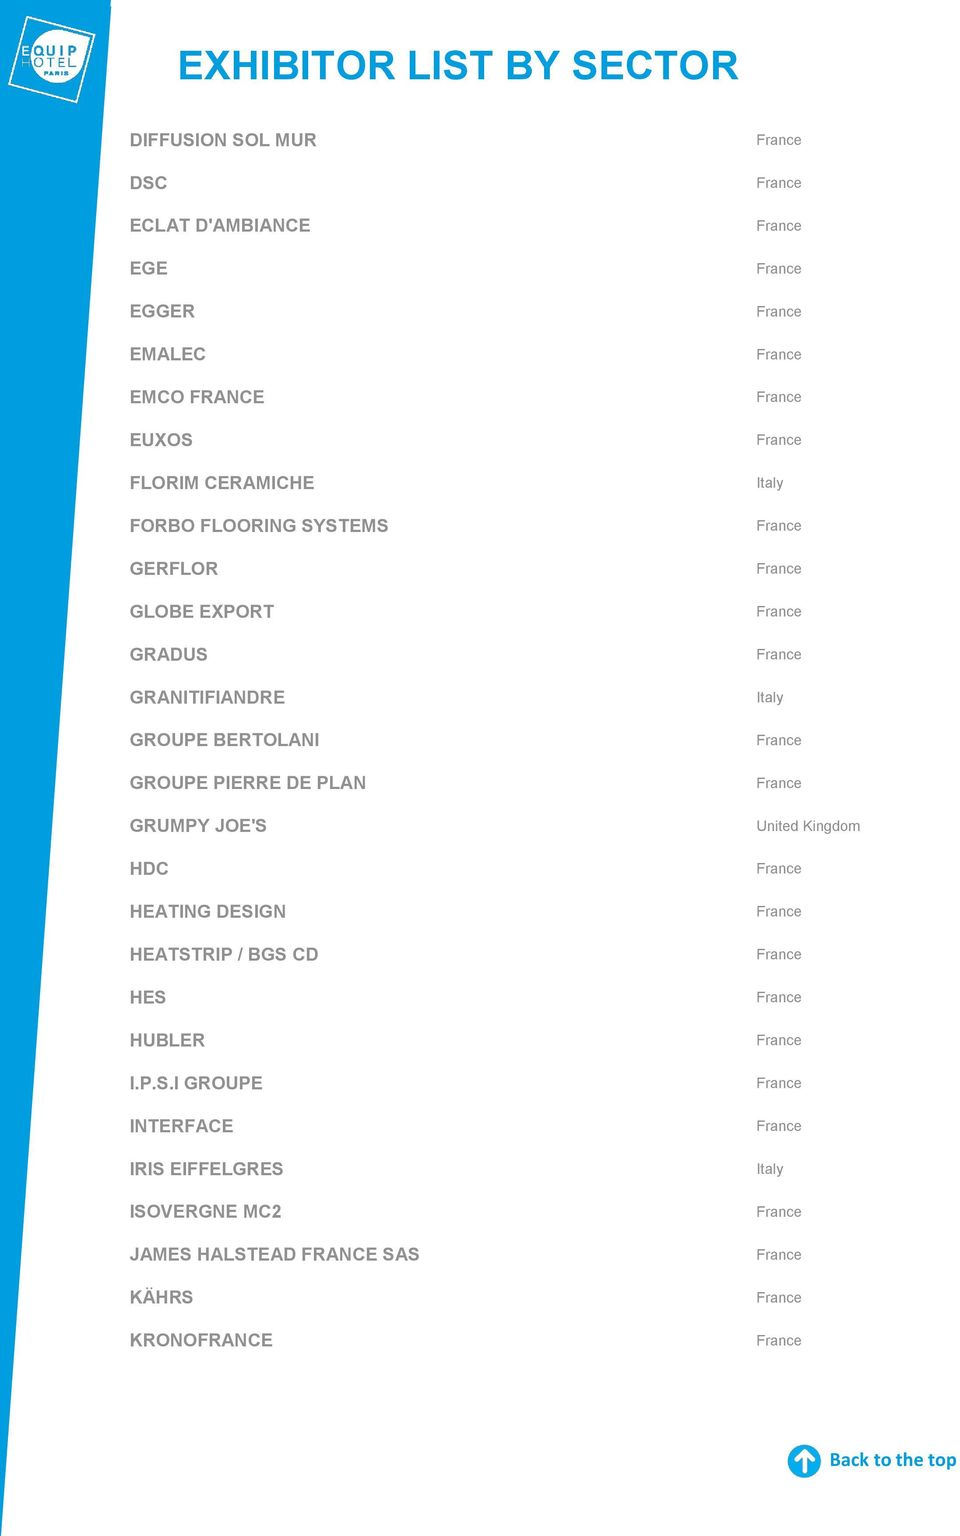 EXHIBITOR LIST BY SECTOR - PDF